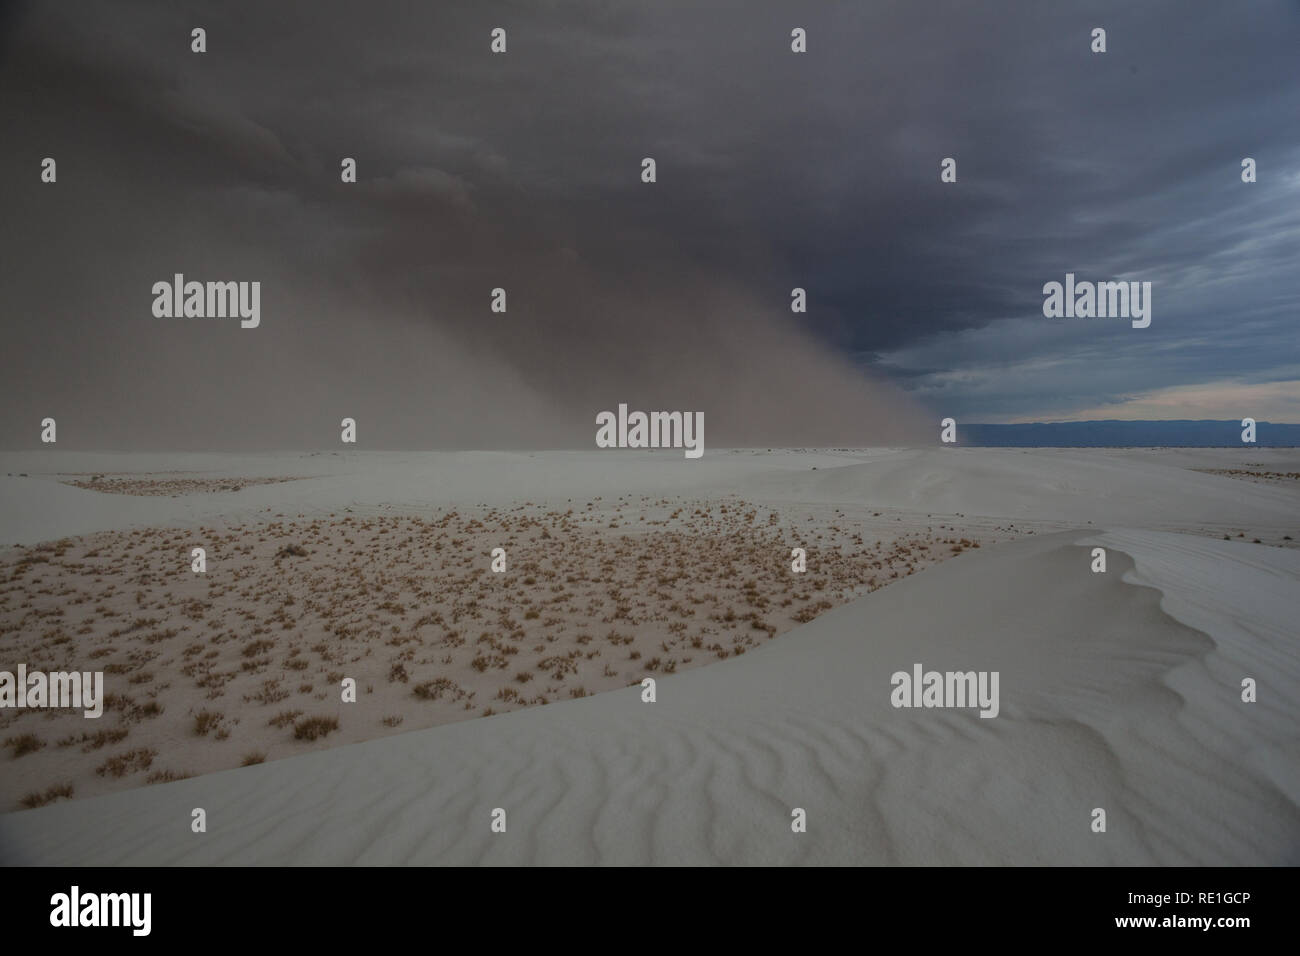 White Sands National Monument, Otero County, New Mexico, USA - Stock Image